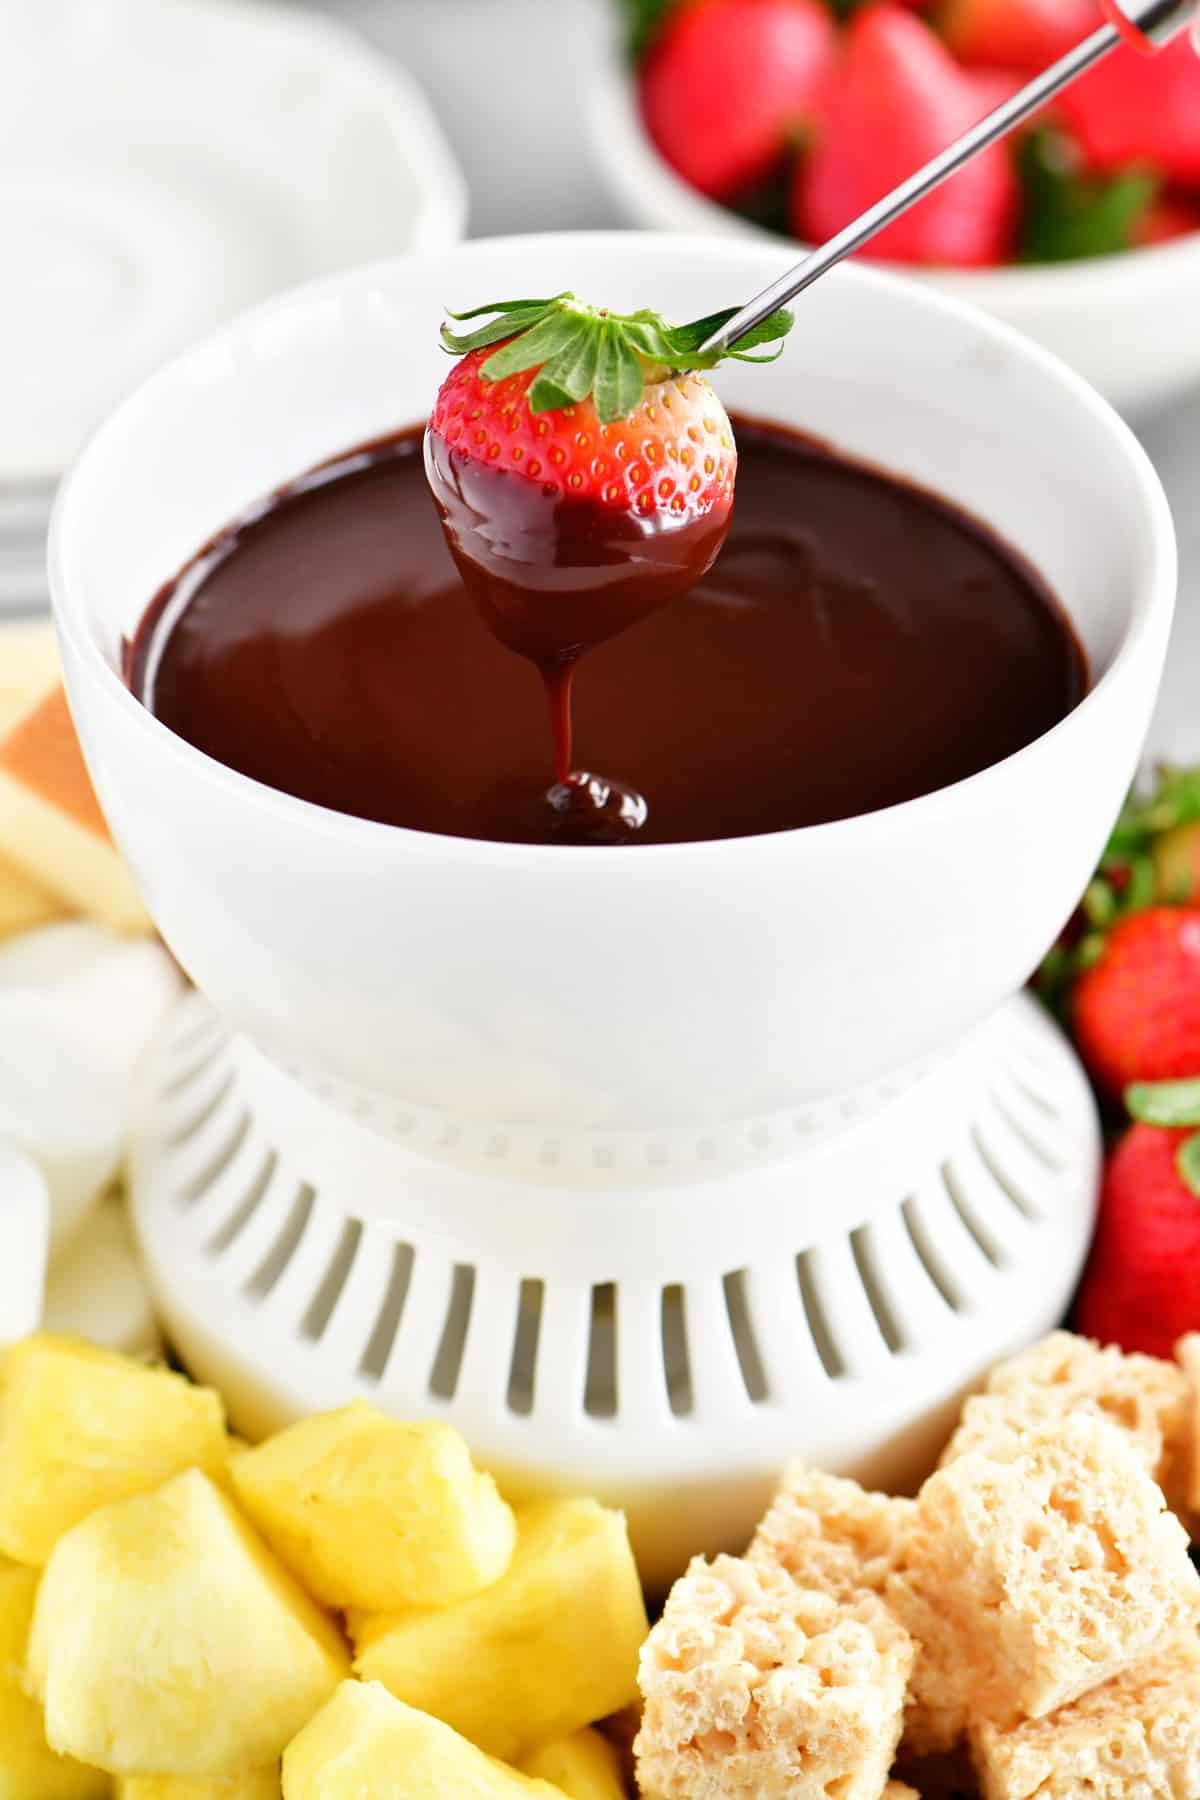 a strawberry being dipped into the chocolate fondue mixture